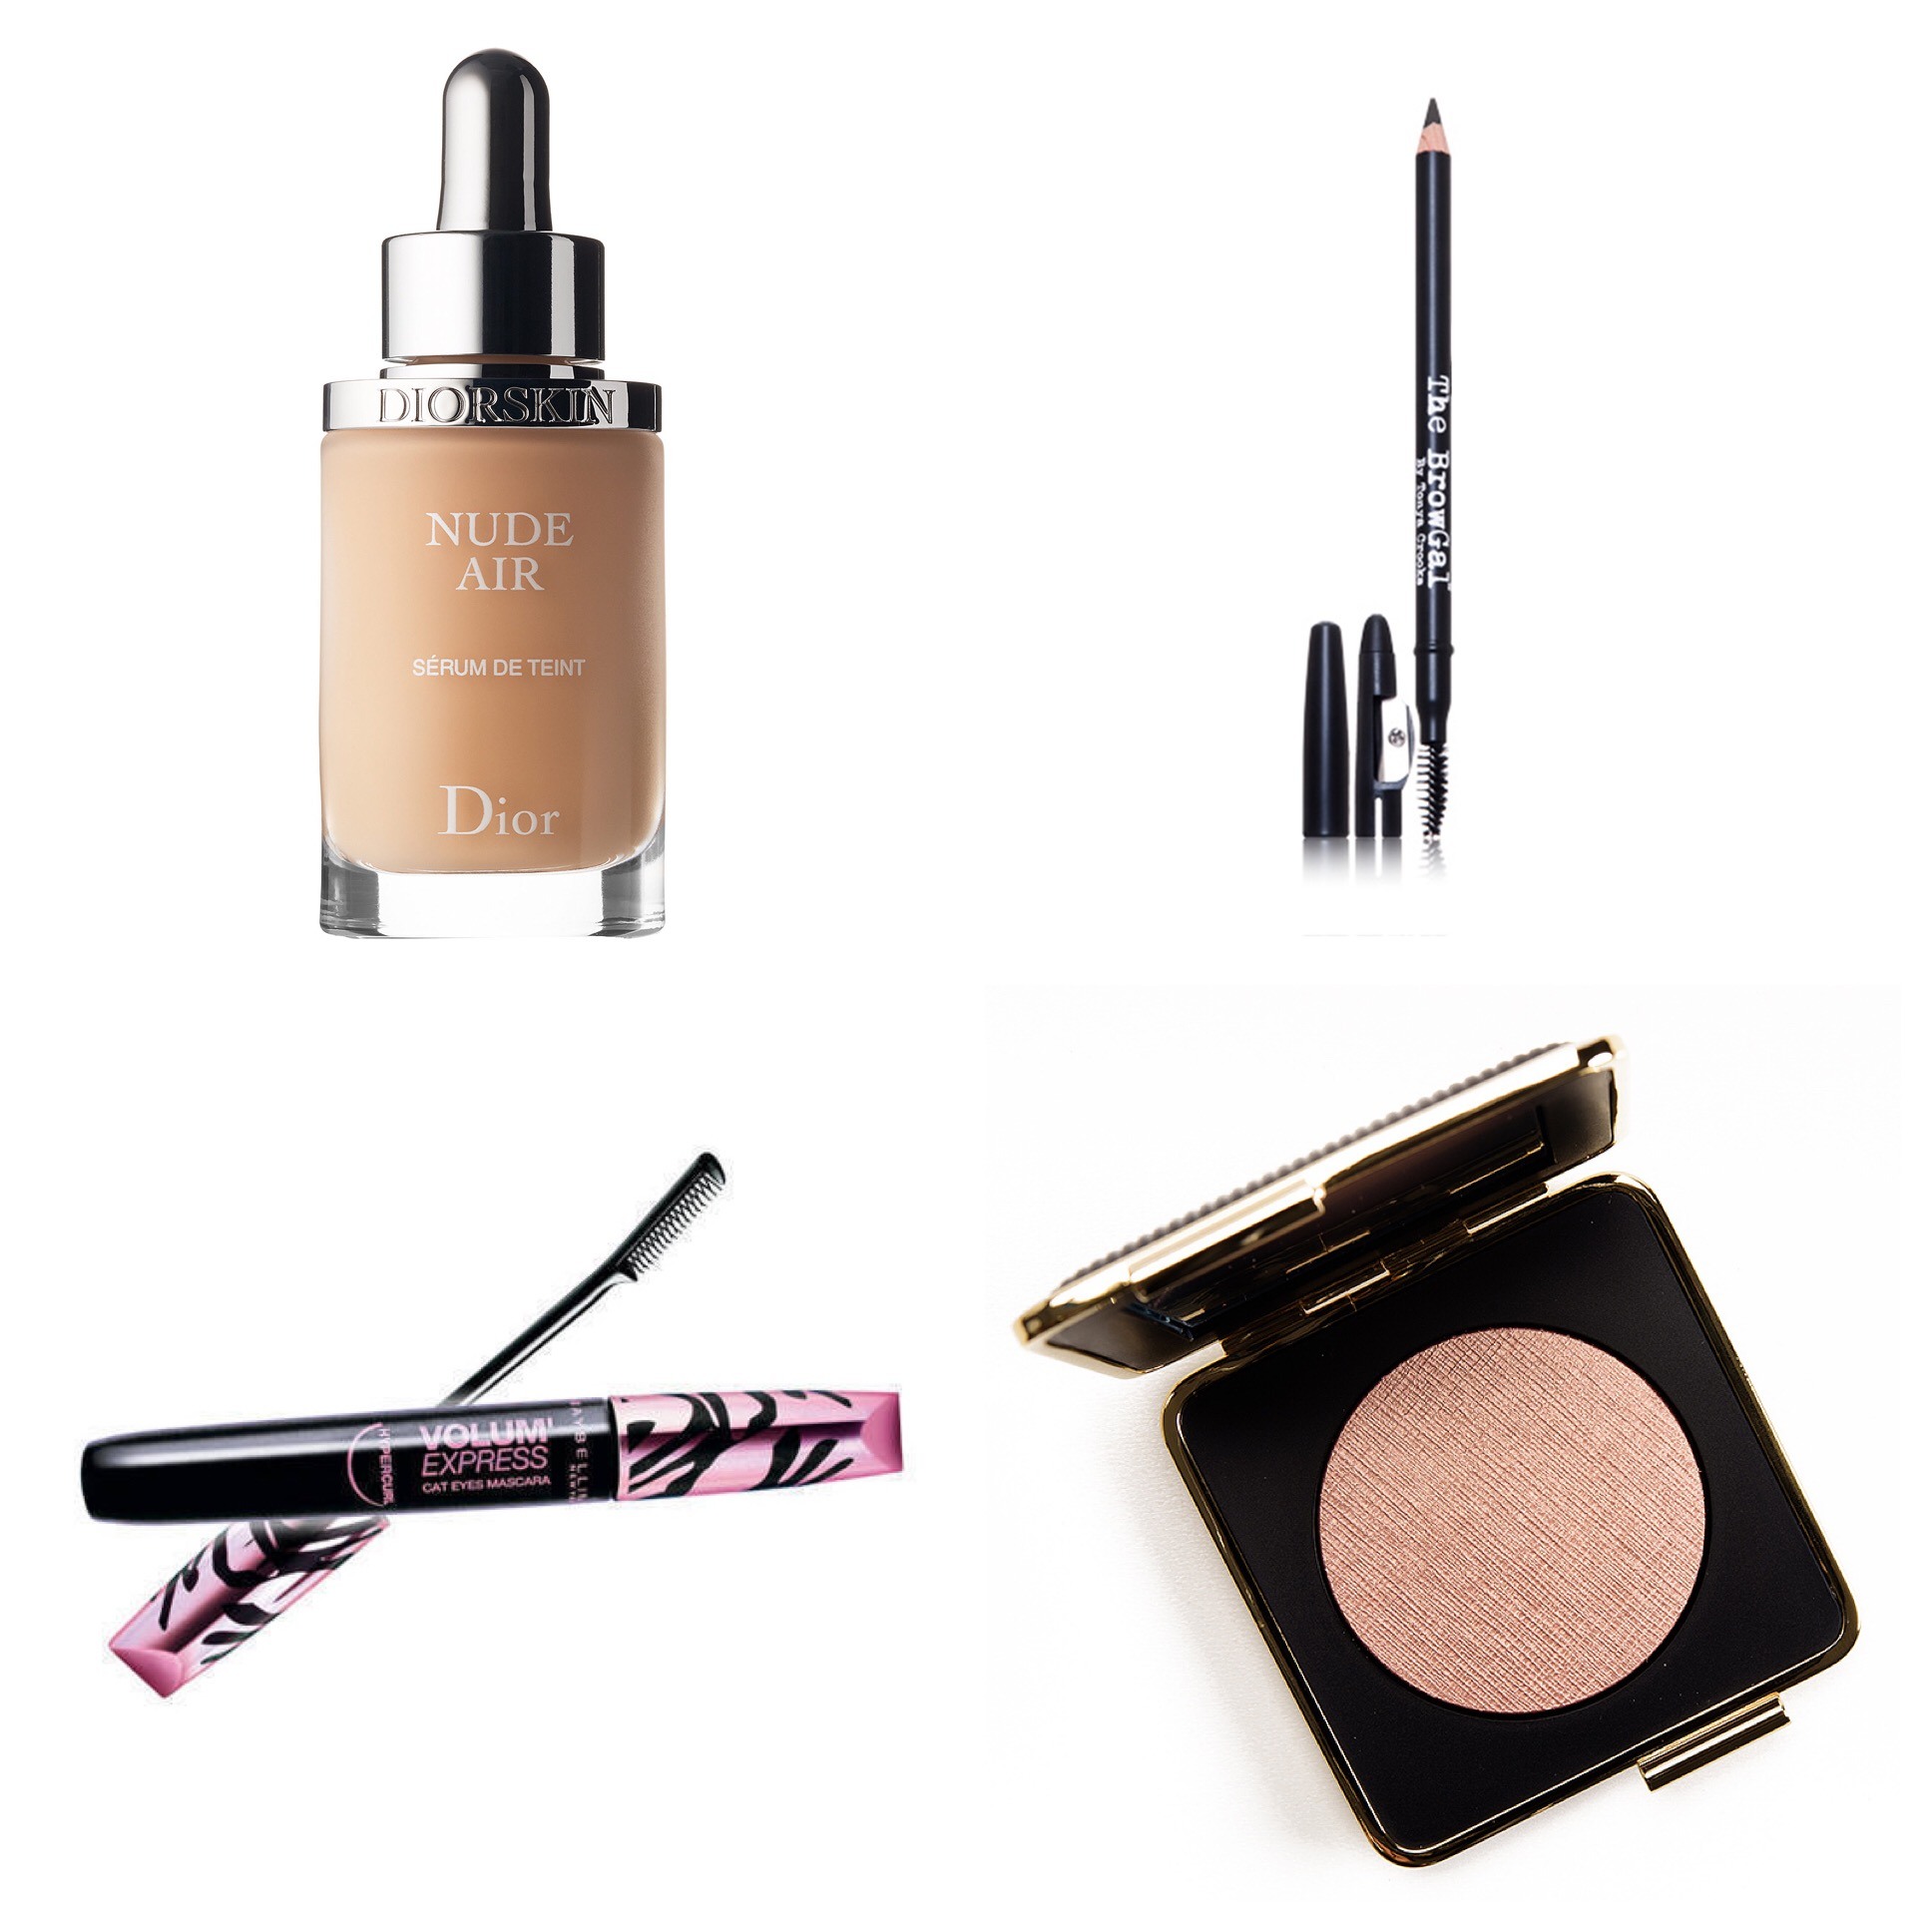 Some of Hani's daily must-haves (clockwise): DiorSkin Nude Air Serum, The BrowGal Skinny Eyebrow Pencil, Maybelline Volum Express Cay Eyes Mascara, Victoria Beckham x Estee Lauder Modern Mercury Highlighter.